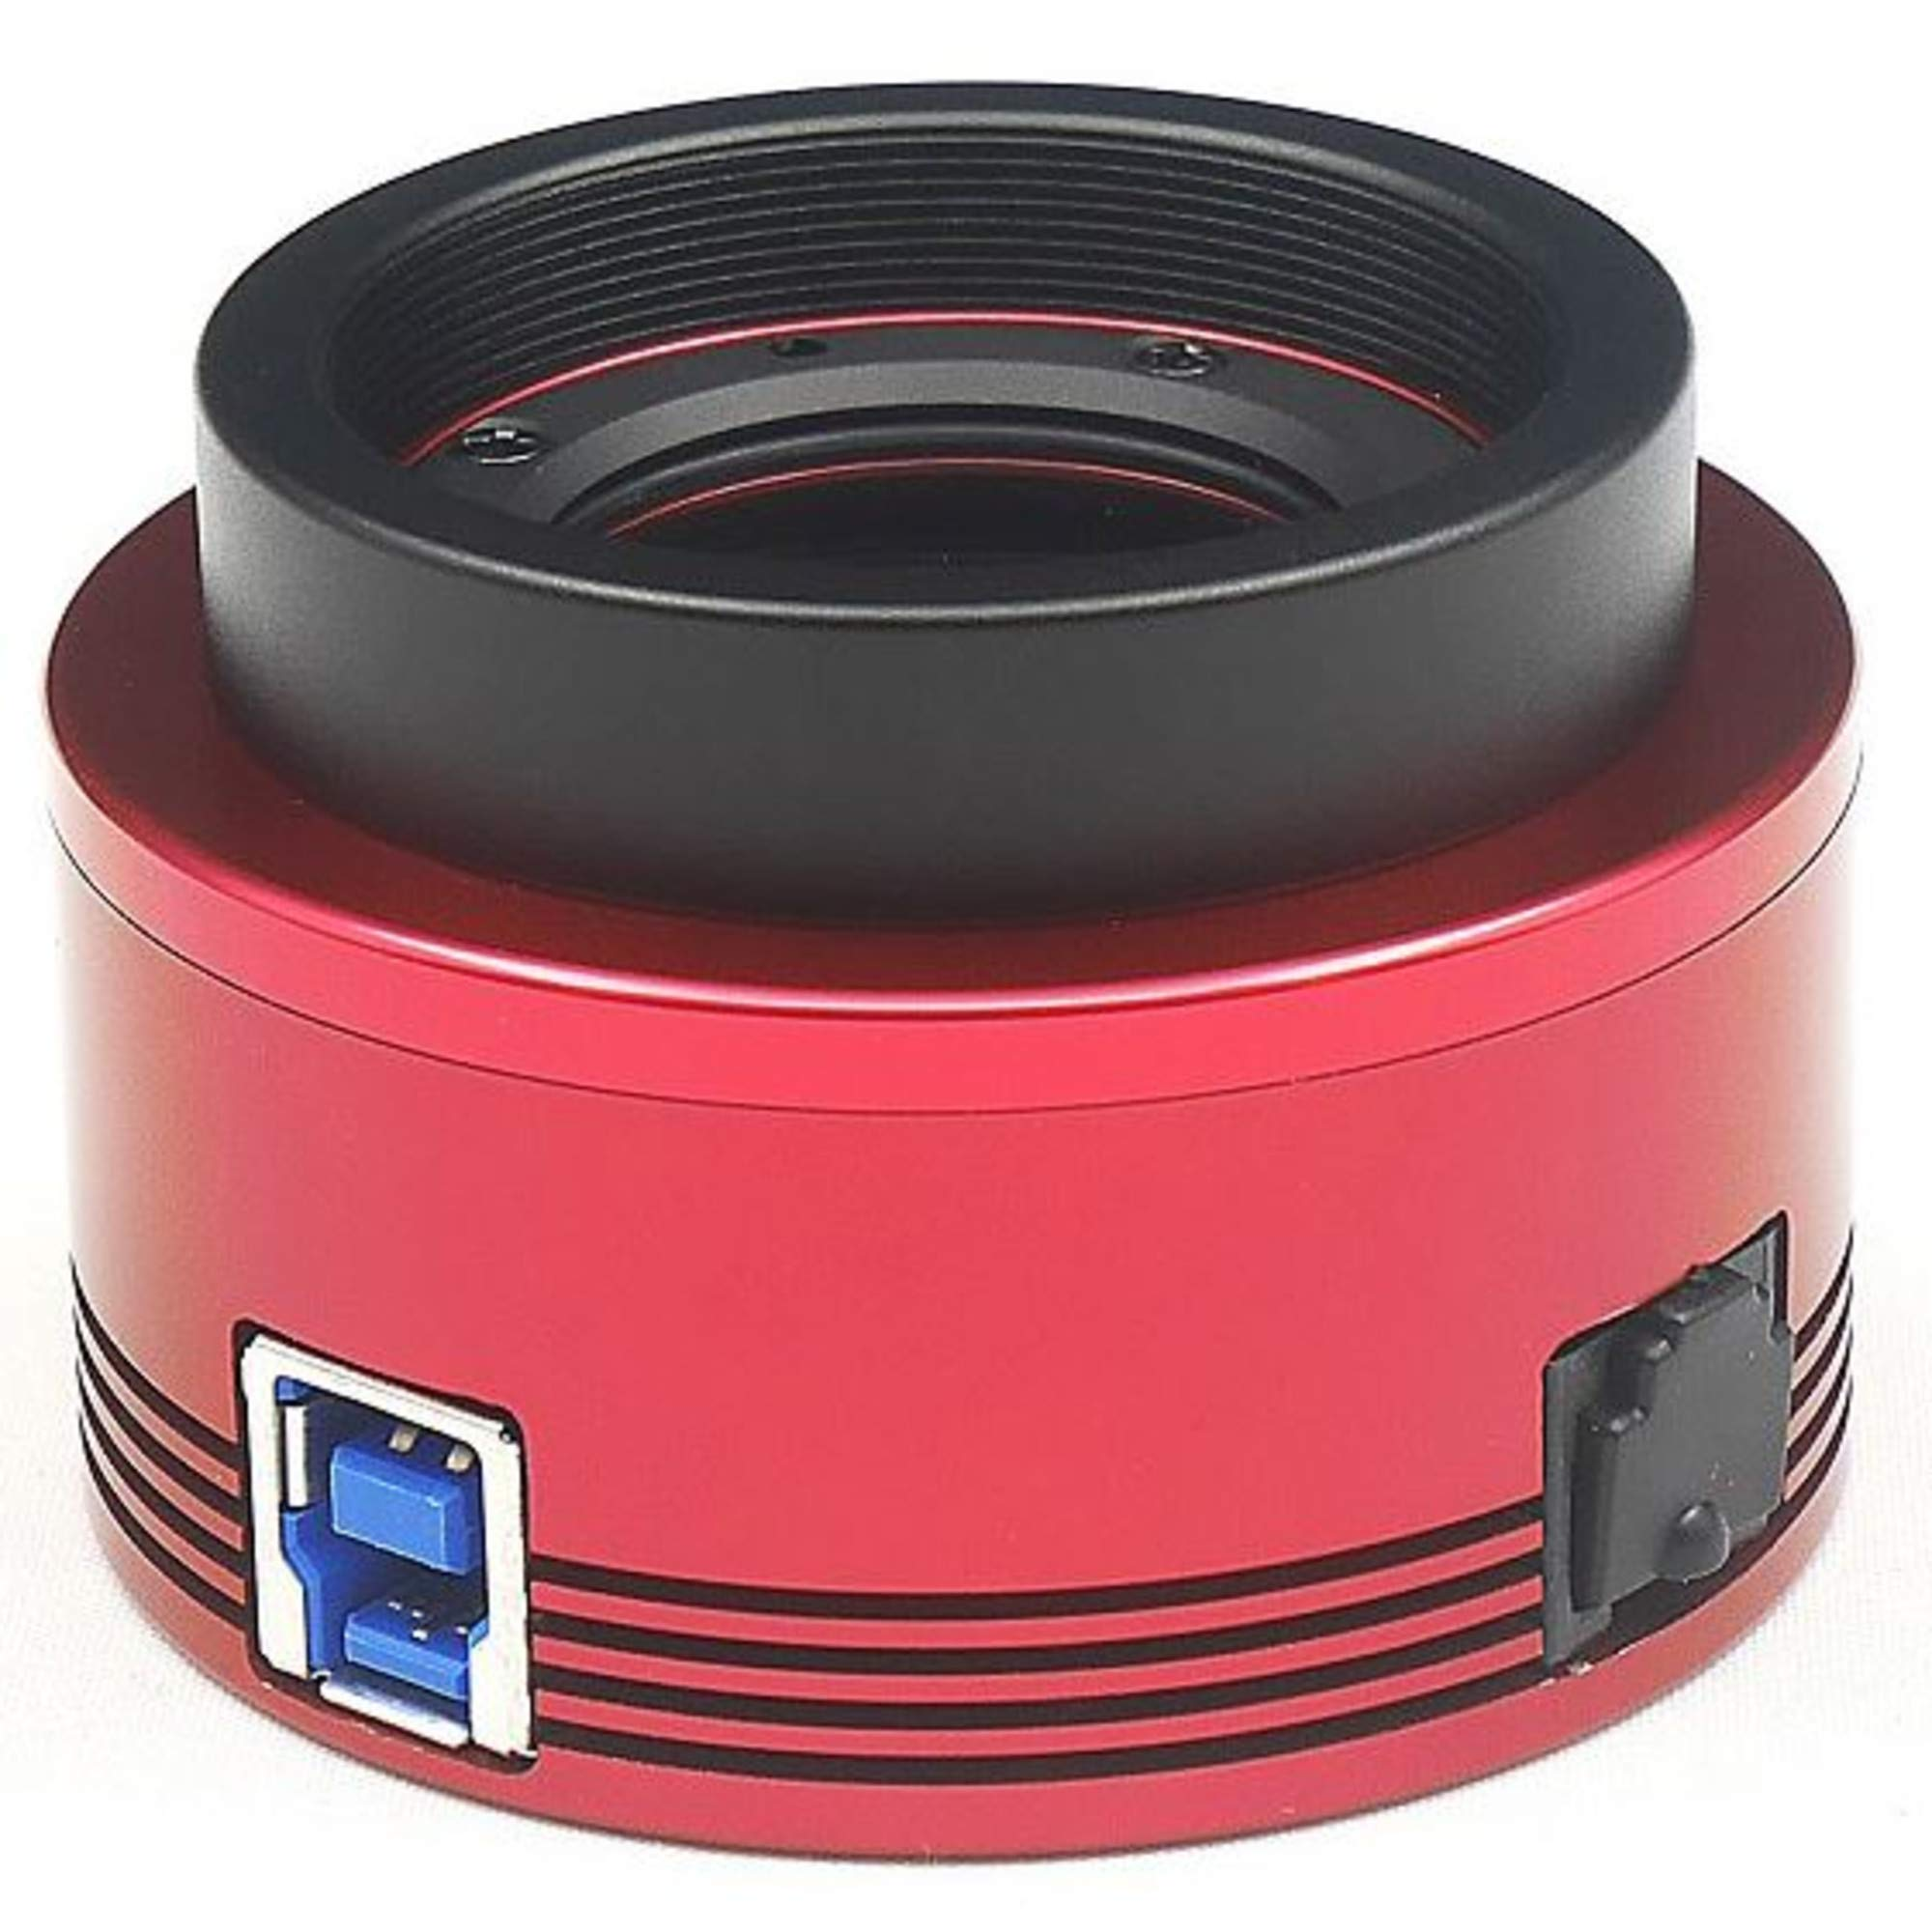 ZWO ASI183MC 20 Megapixel USB3.0 Color Astronomy Camera for Astrophotography by ZWO